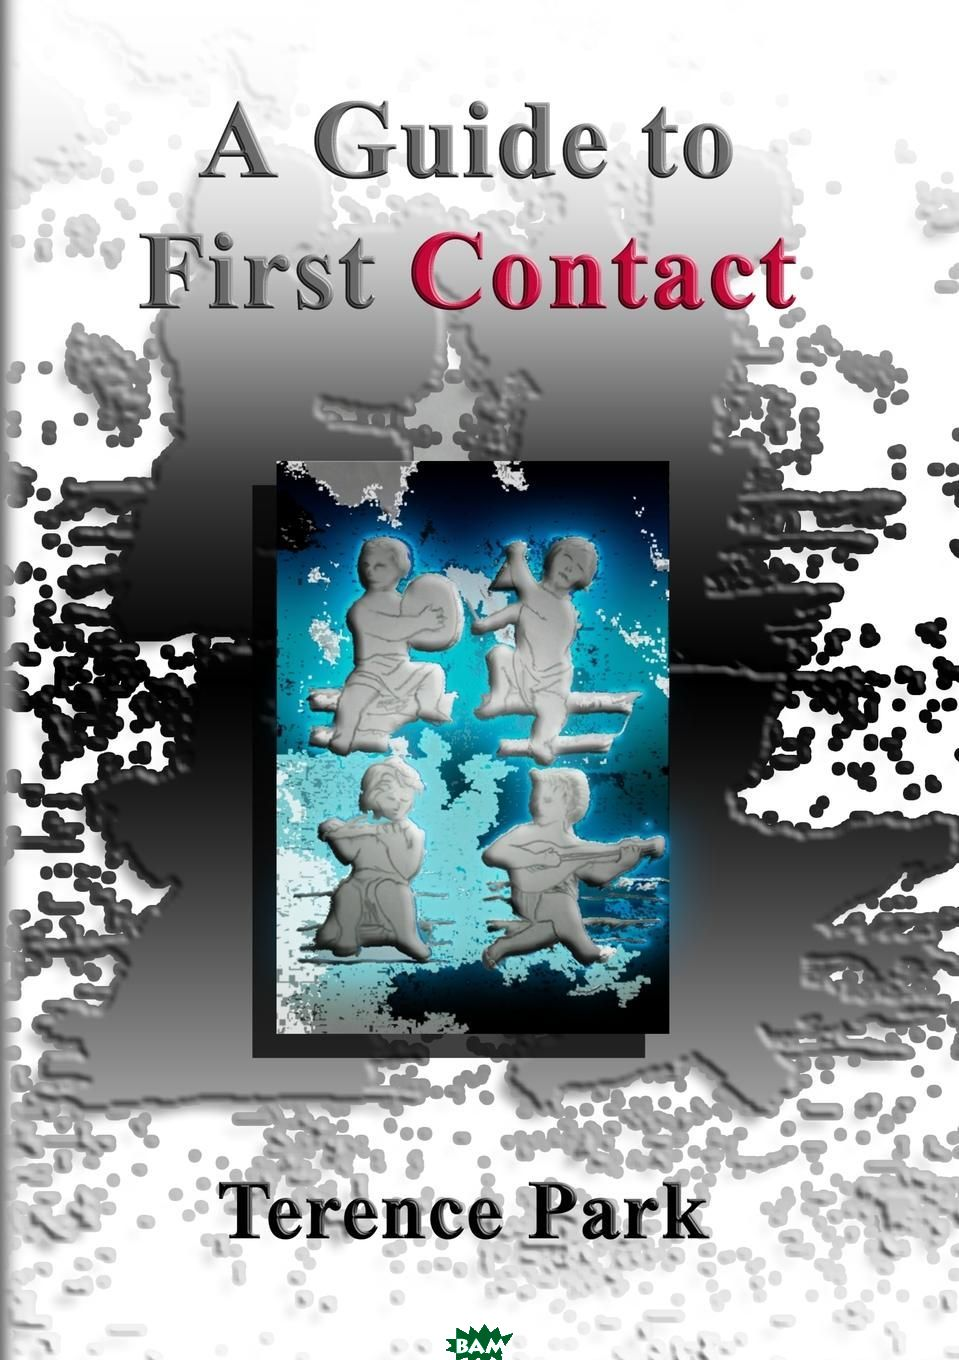 A Guide to First Contact